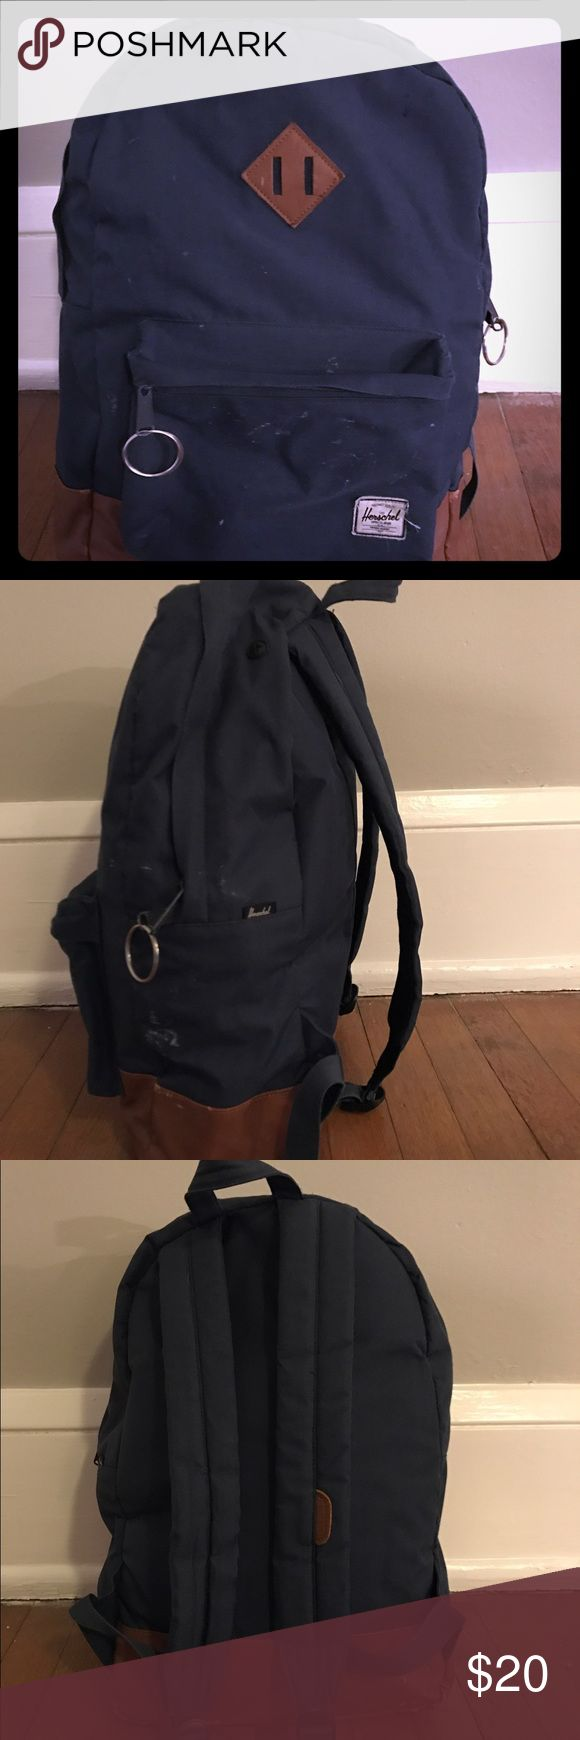 Blue, Herschel Bookbag, zip-up Shows obvious signs of use, but is comfortable to wear and holds a lot Herschel Supply Company Bags Backpacks